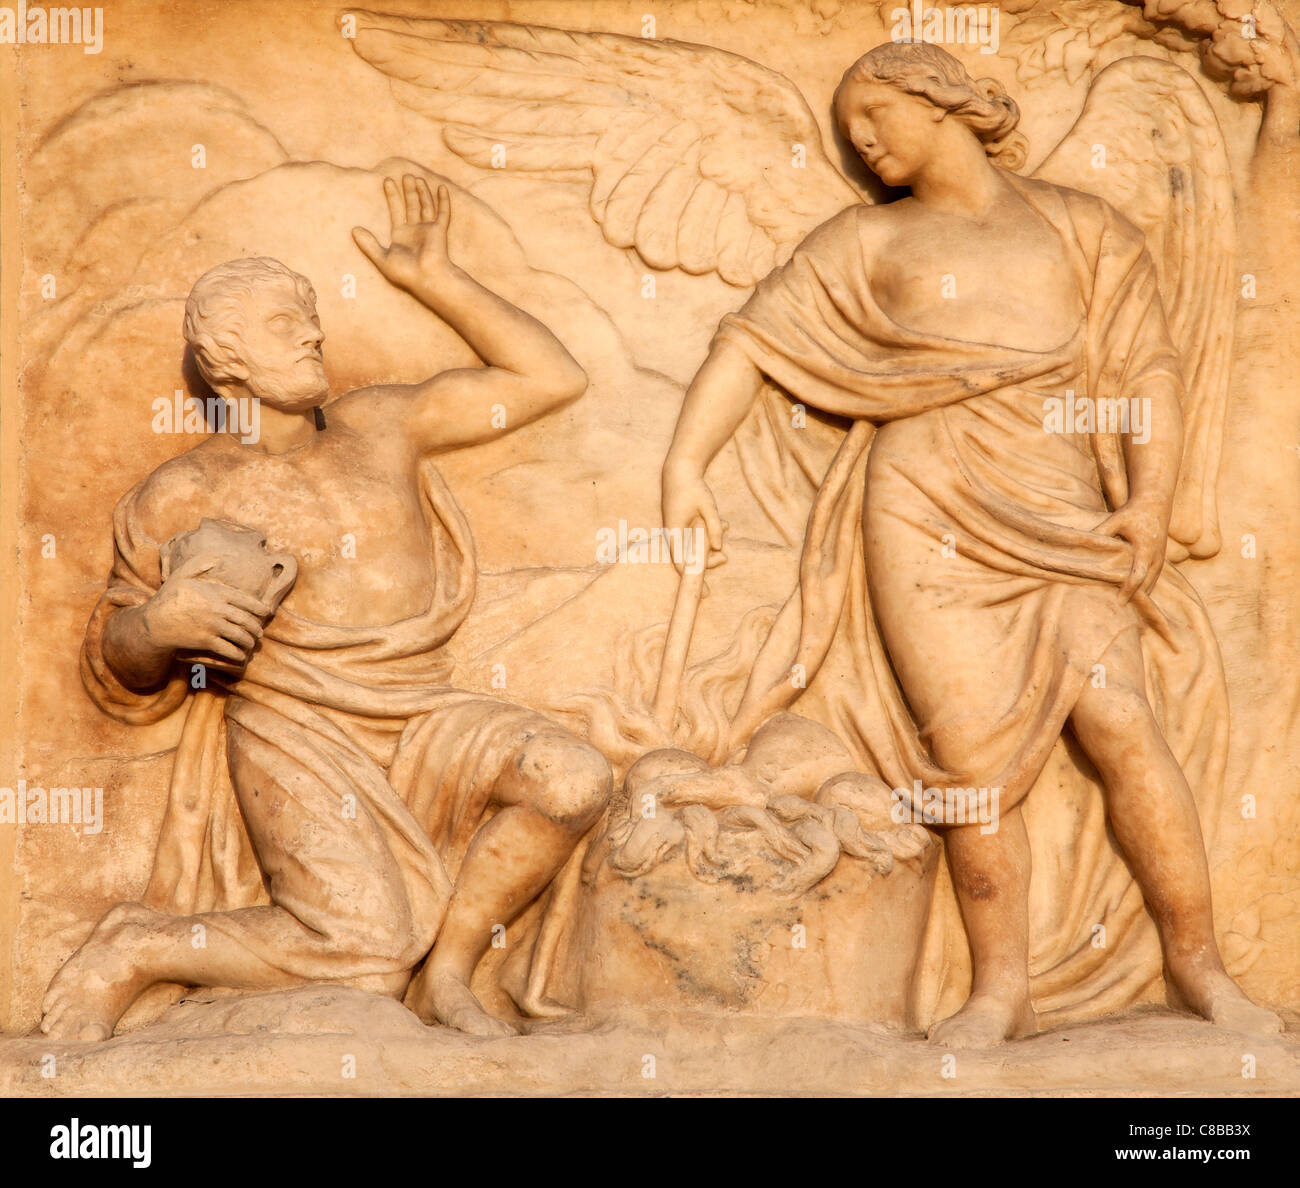 Milan - detail from facade of Duomo - Offer of Cain - Stock Image